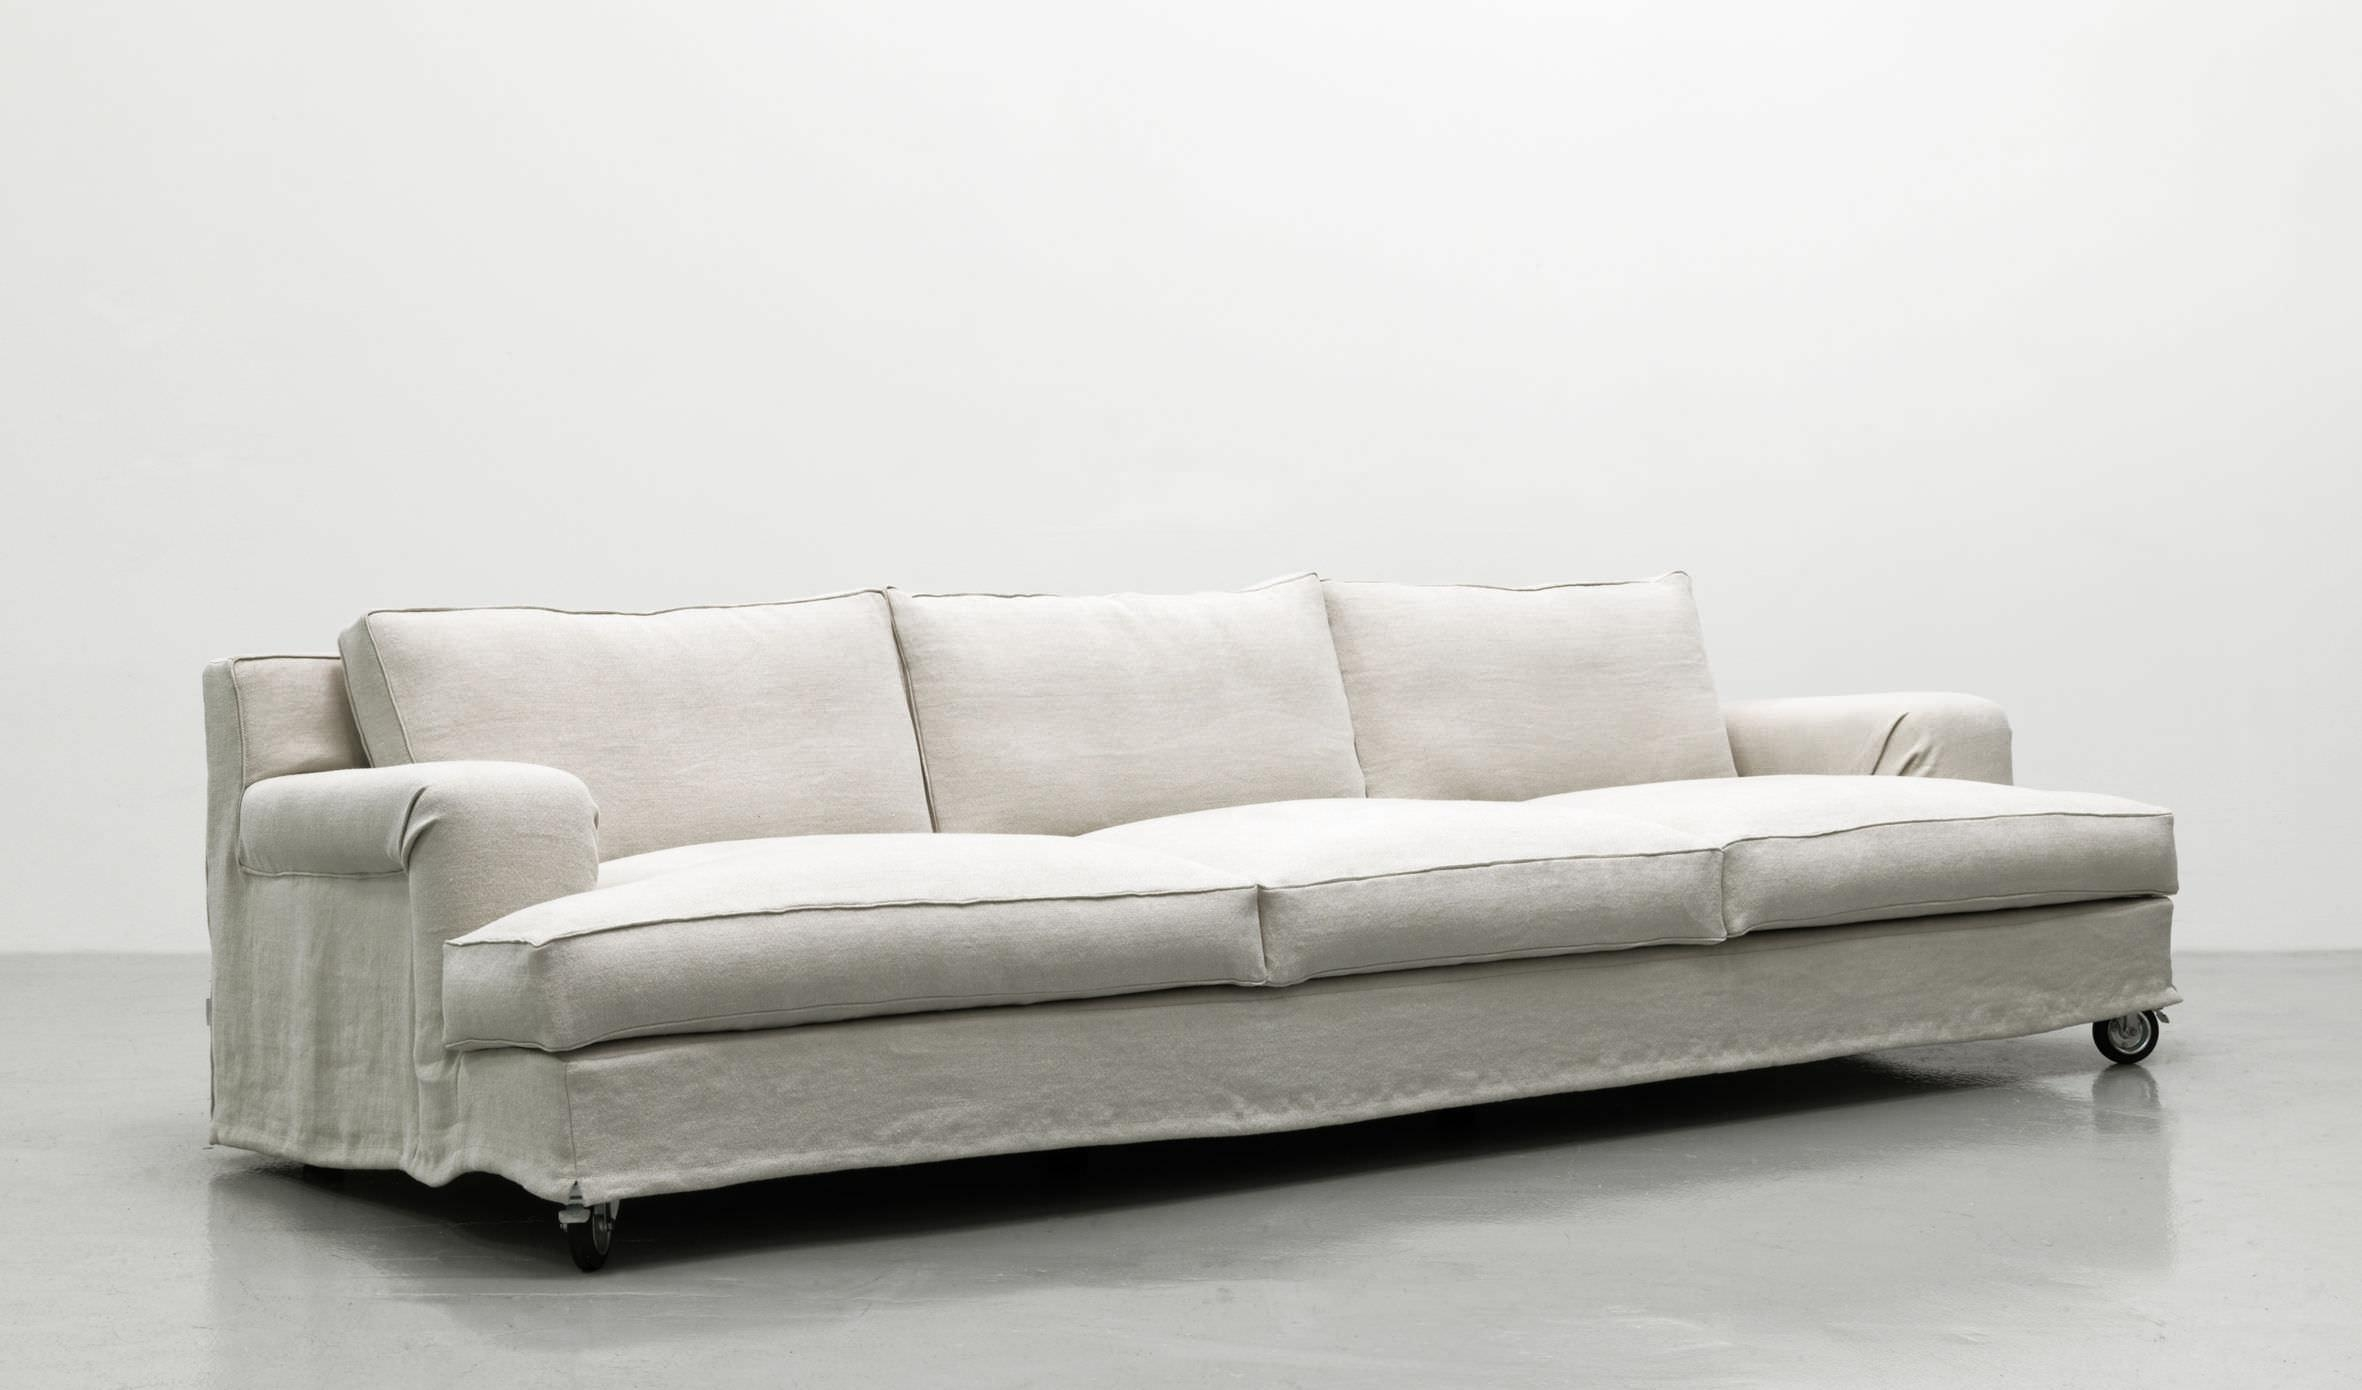 Contemporary Sofa / Fabric / 3 Seater / On Casters – Aberdeen Within Casters Sofas (Image 7 of 20)